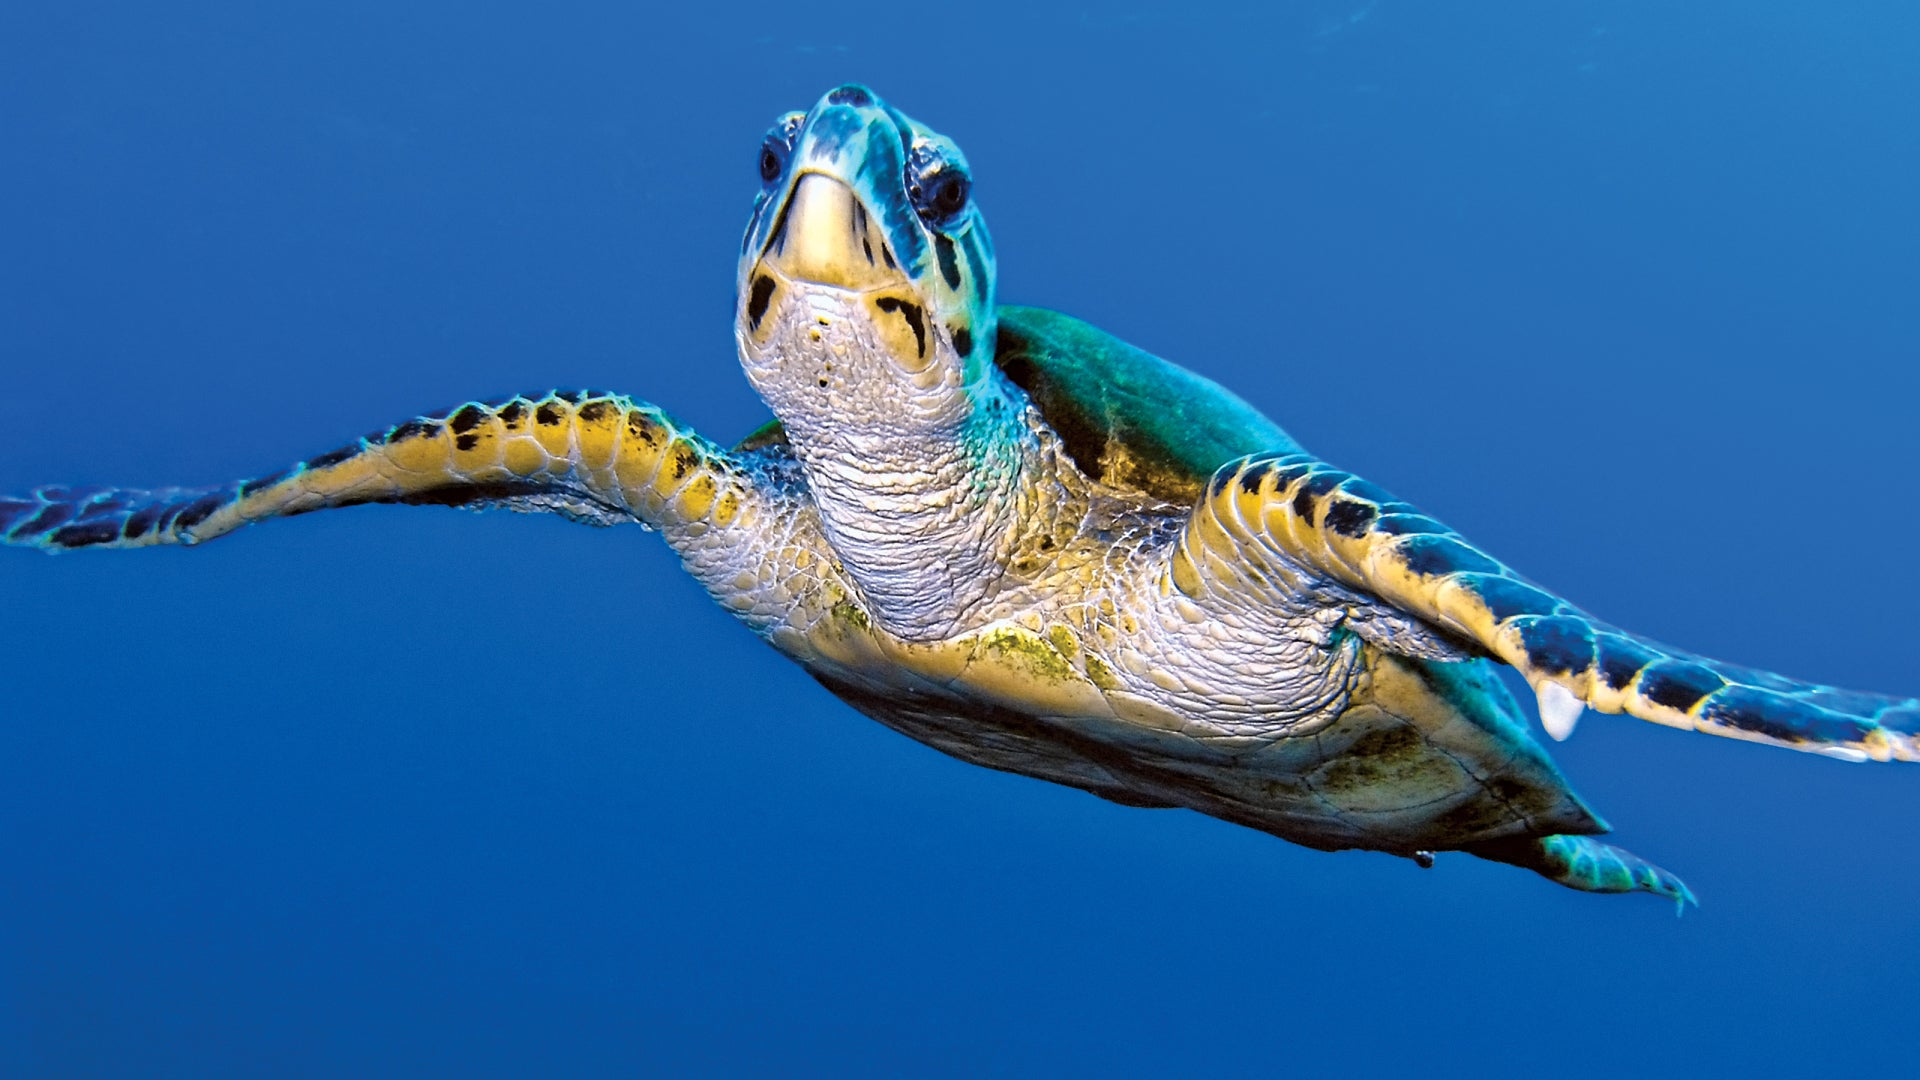 10 Fun facts for the Turtle!